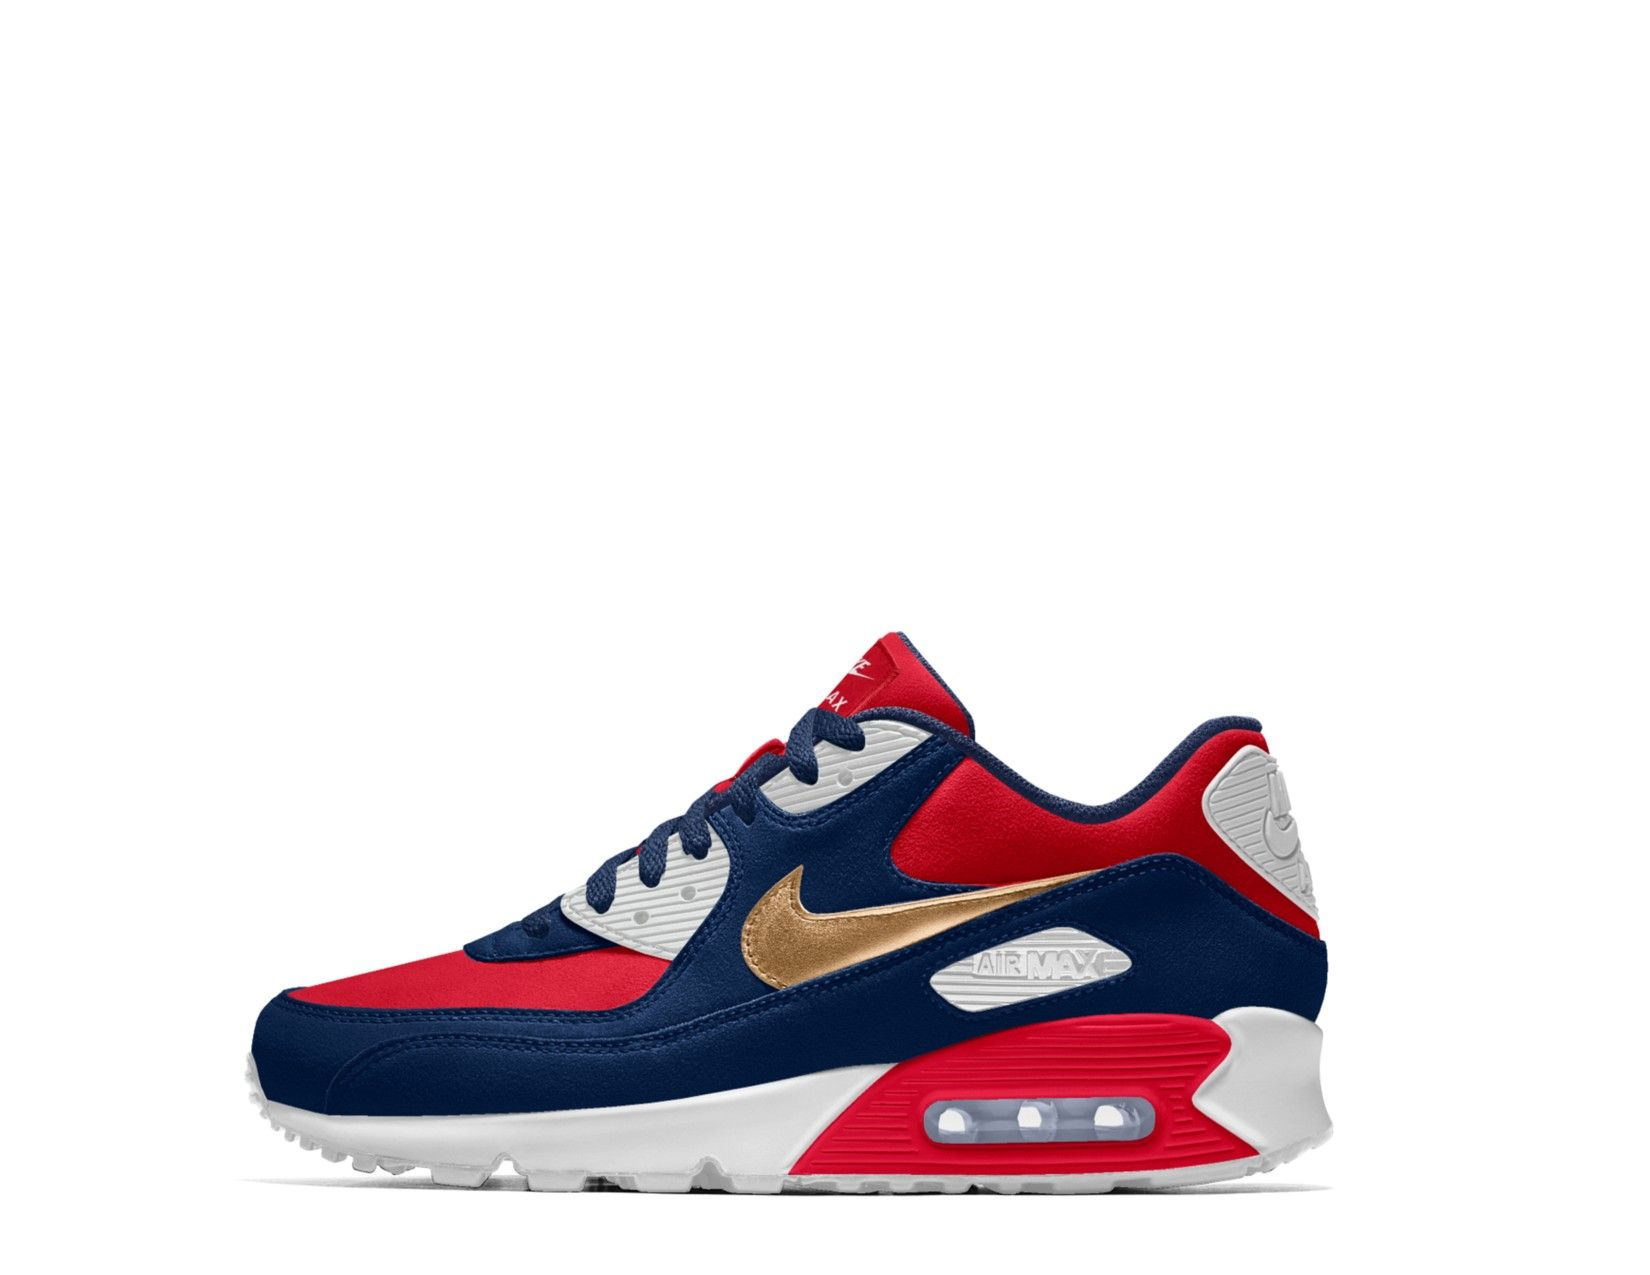 1990 Air Max Olympic Gold, Red, White and blue. | Blue